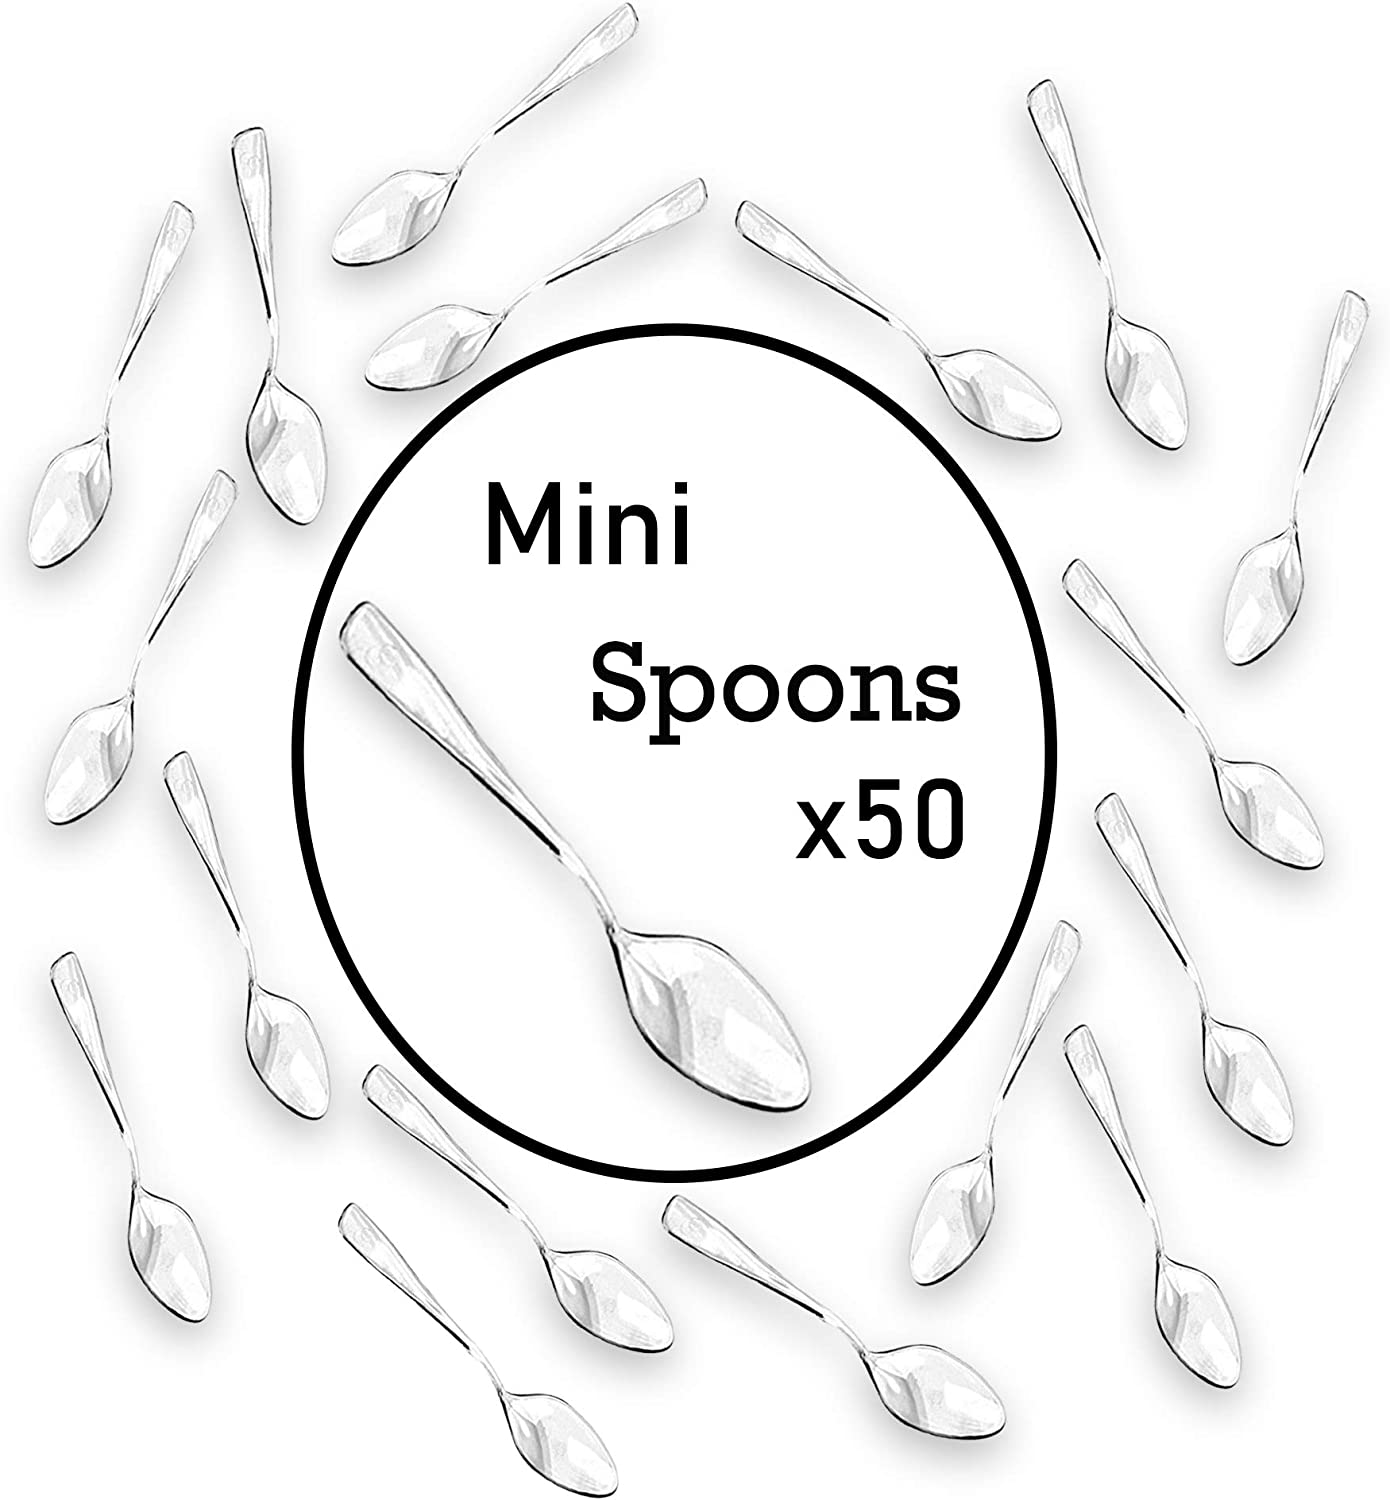 Loreso Disposable Plastic Mini Clear Dessert Spoons For Miniature Dessert Cups, Tasting Party, Sampling, Ice Cream, Small Catering Supplies - 50 CT